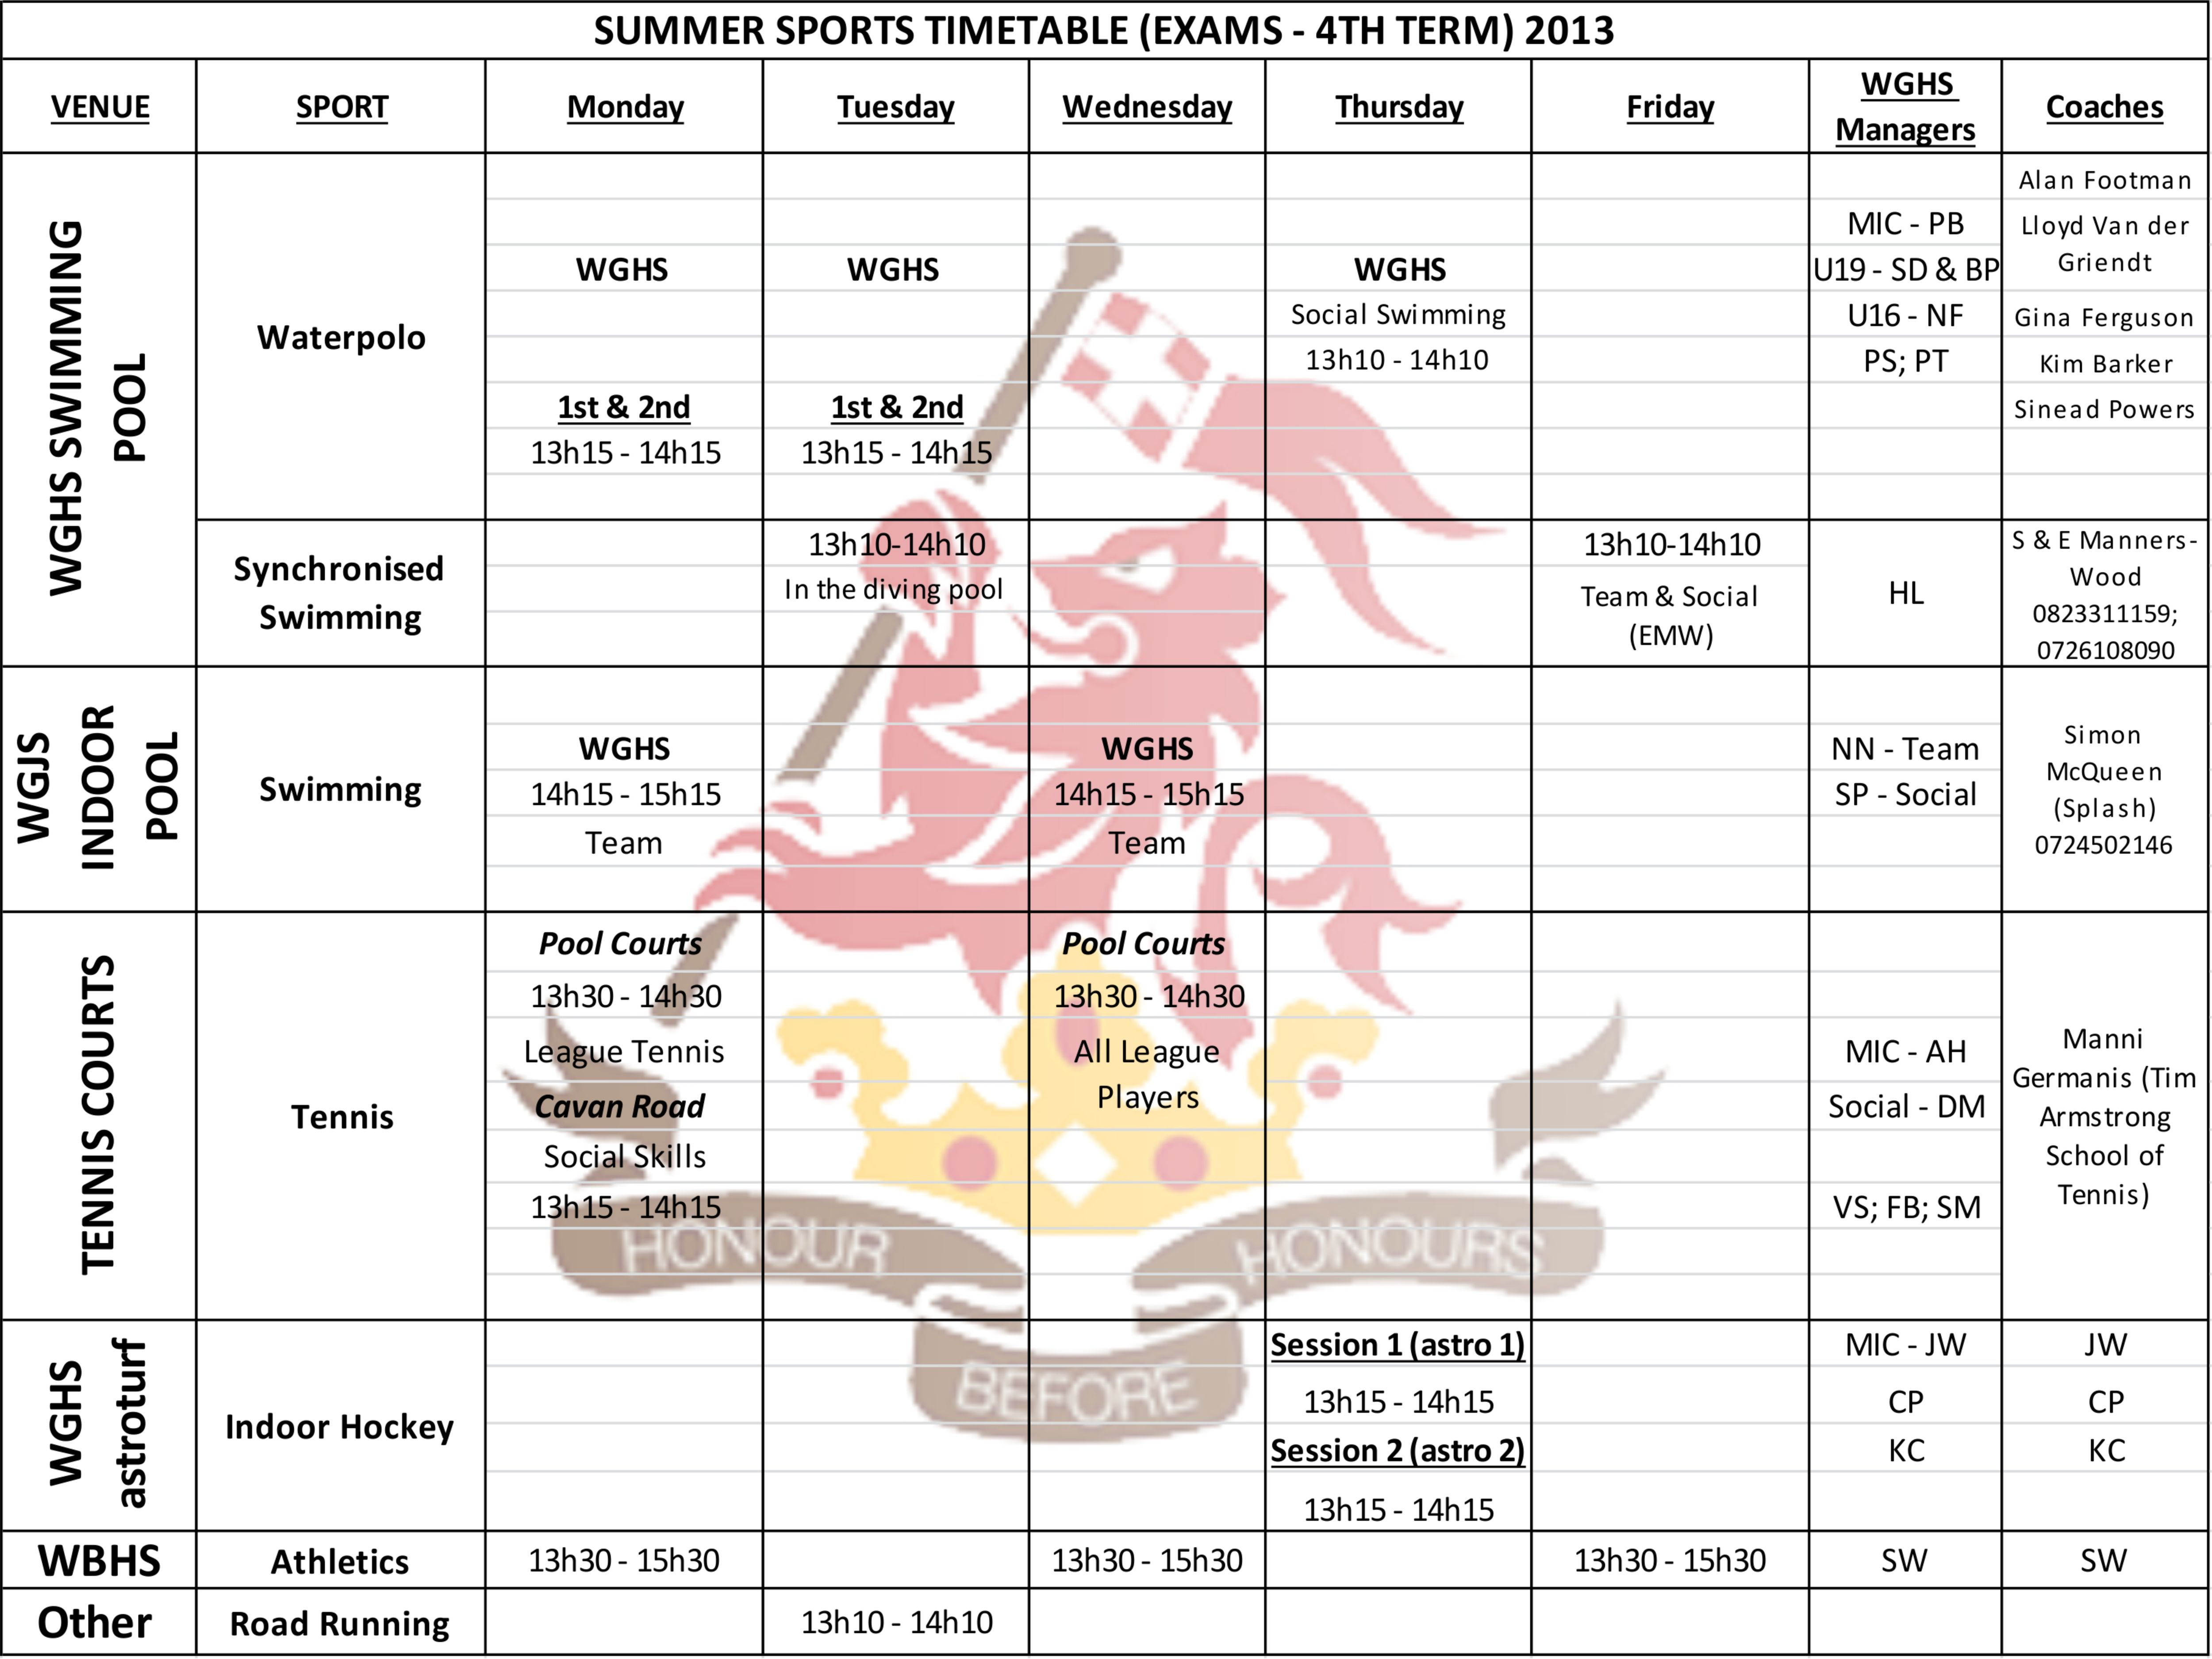 Sports Timetable during Exams